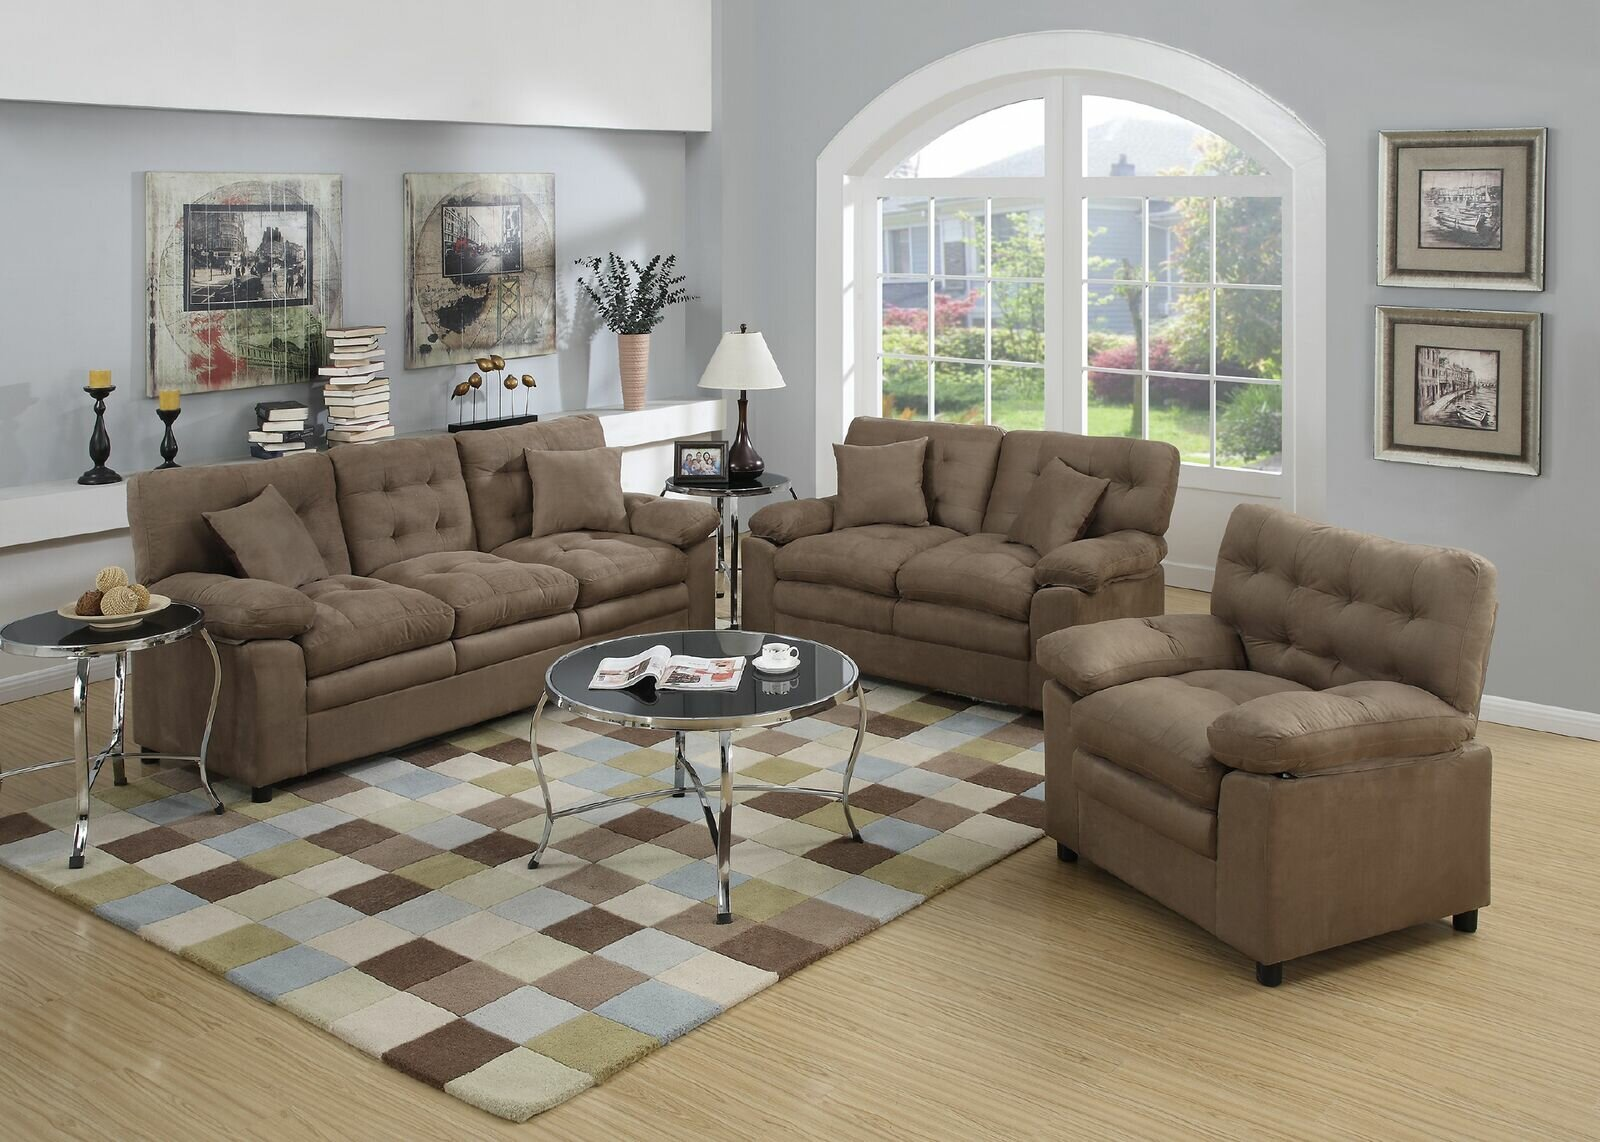 Hayleigh 3 Piece Living Room Set